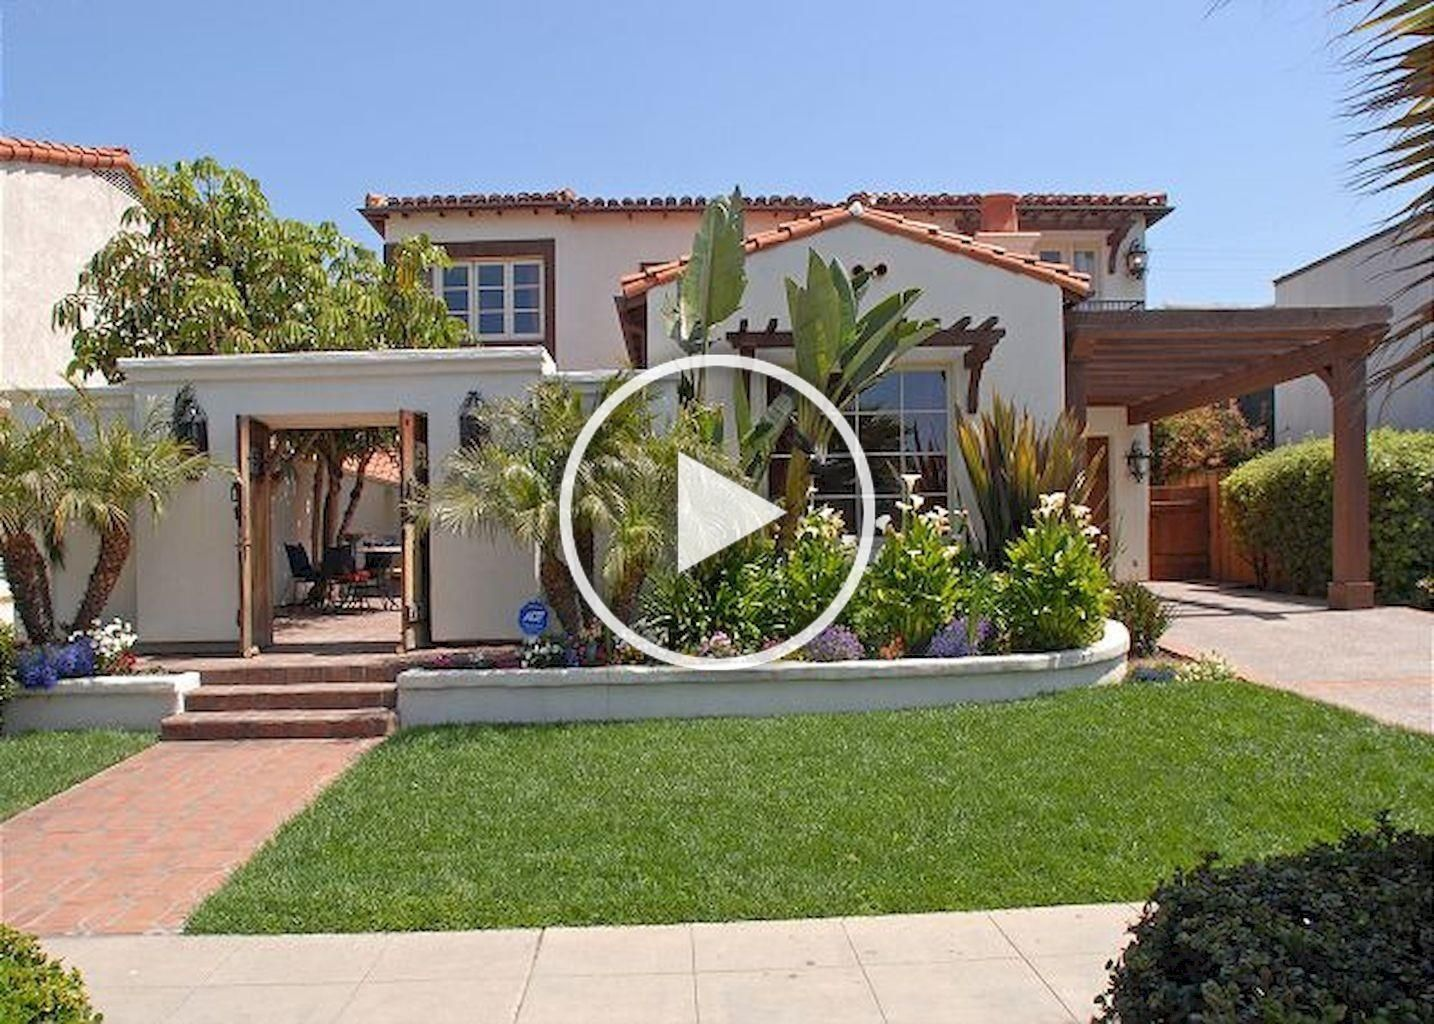 A Comprehensive Overview on Home Decoration in 2020 | Spanish style homes,  Front courtyard, Mediterranean homes exterior